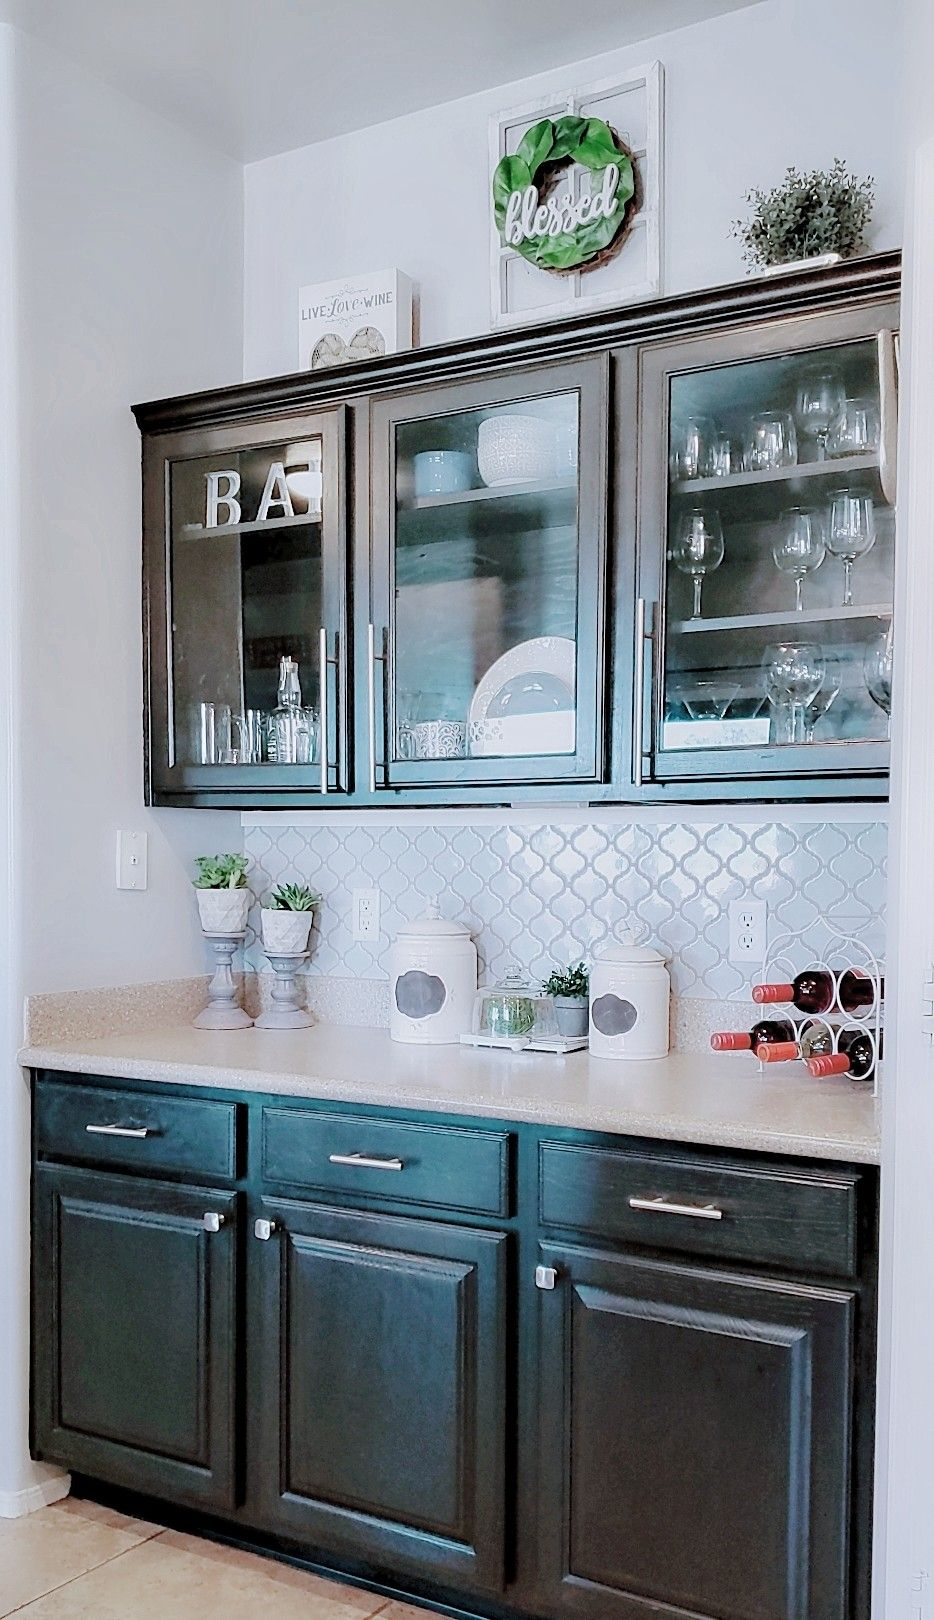 Espresso Cabinets Paint Kitchen Cabinets Home Depot Espresso Cabinets Oak Kitchen Cabinets